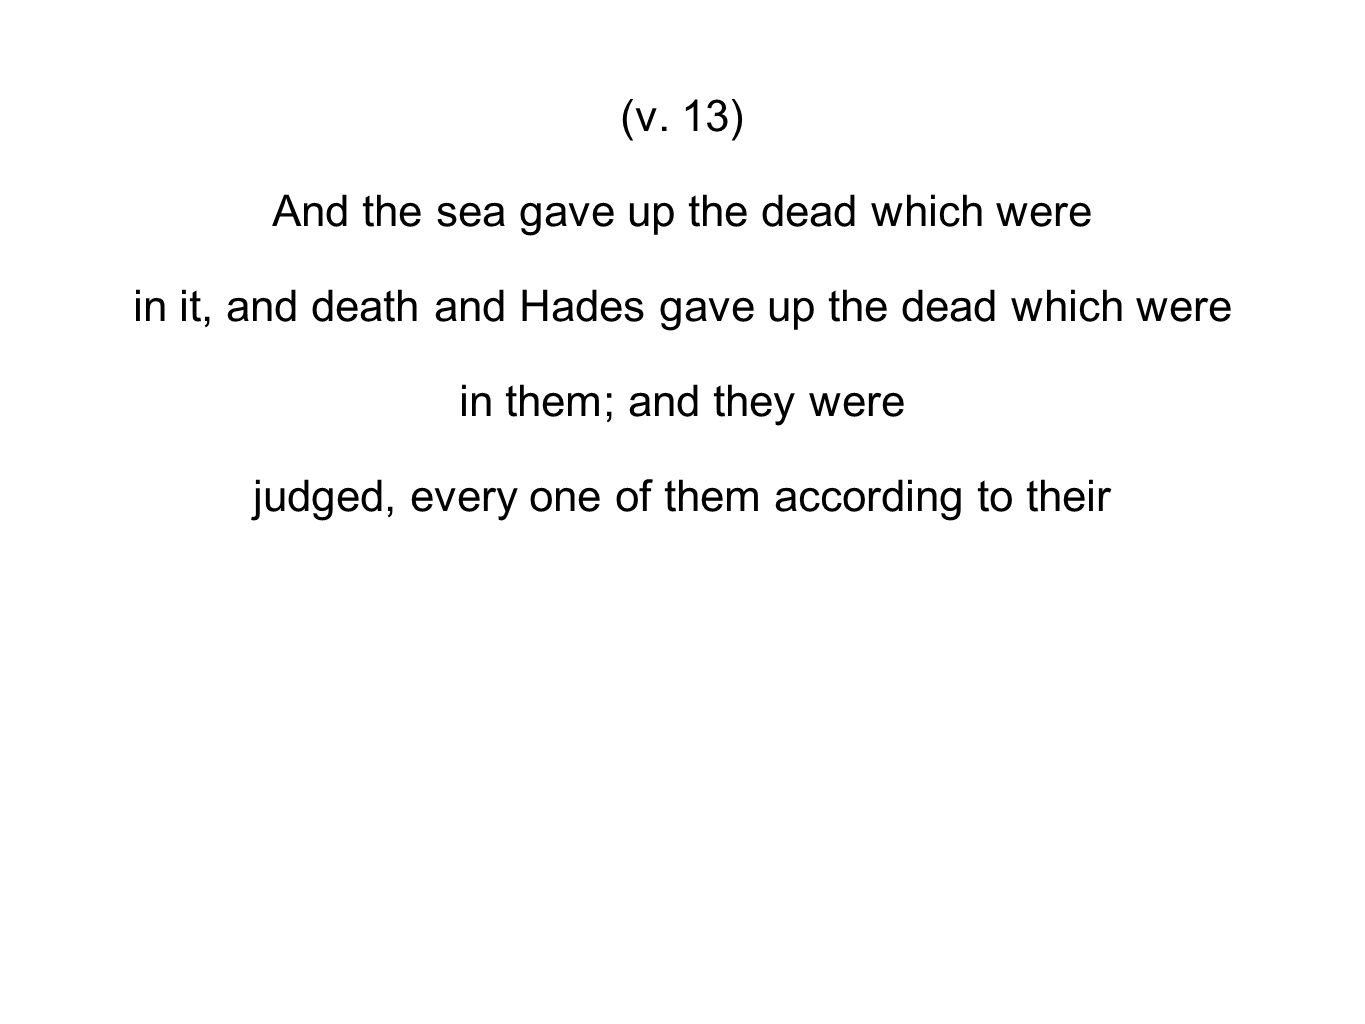 (v. 13) And the sea gave up the dead which were in it, and death and Hades gave up the dead which were in them; and they were judged, every one of the